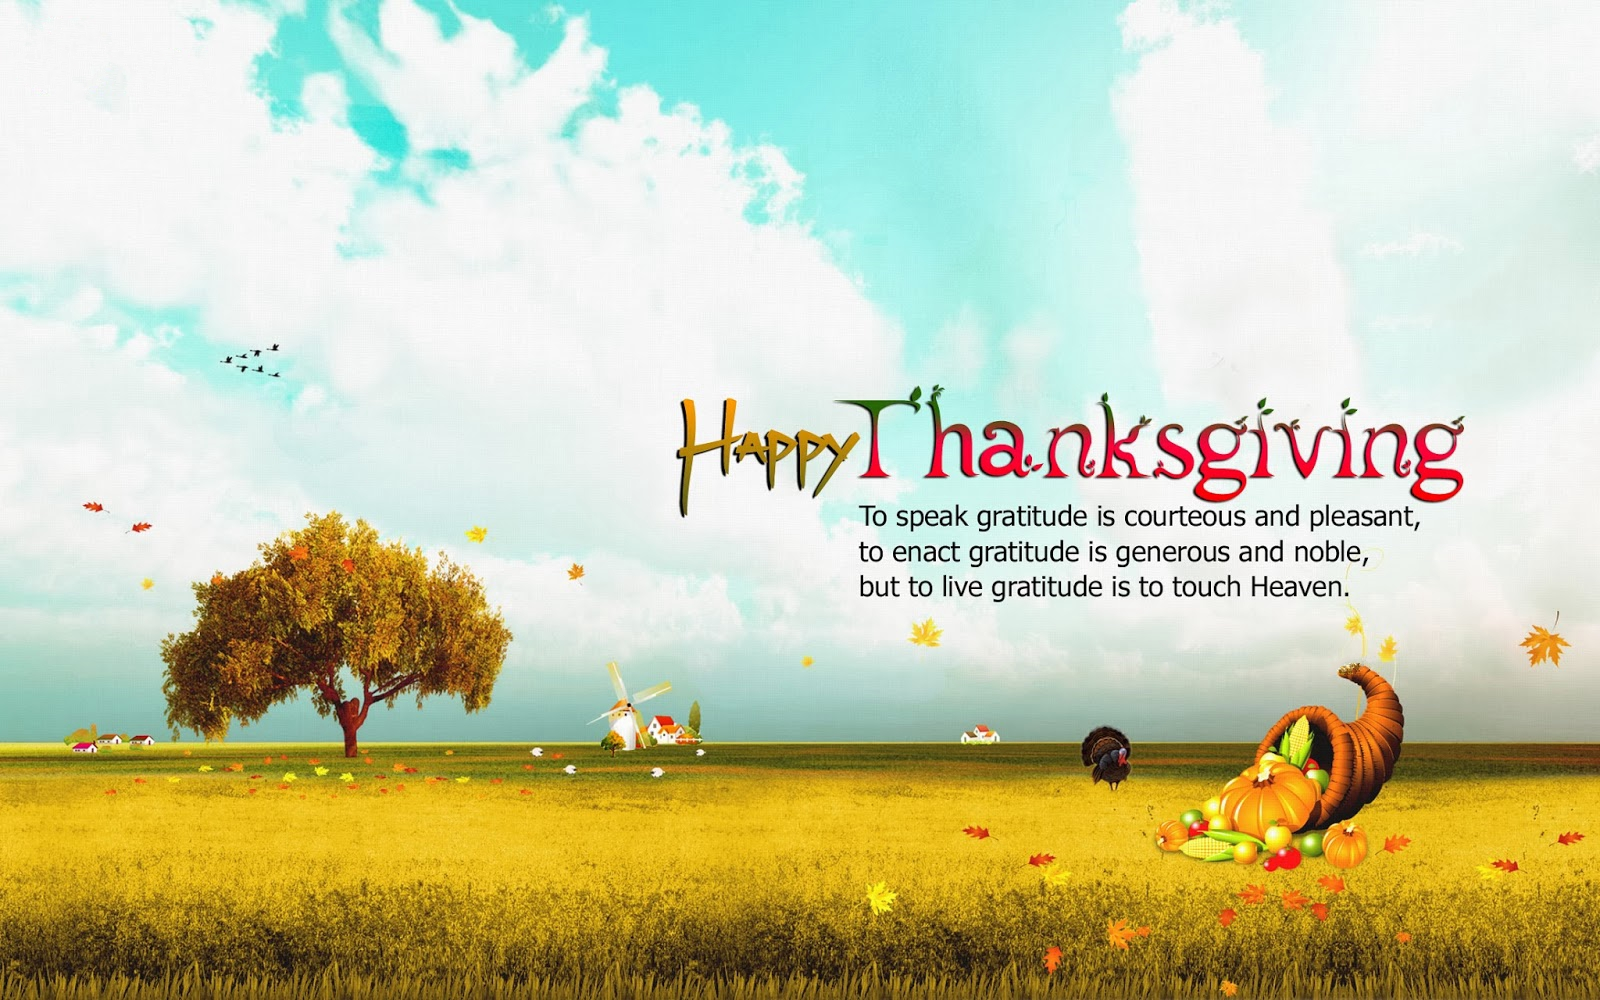 Piquant Thanksgiving Messages Thanksgiving Day Whatsapp Status Whatsapp Dp Collection Happy Thanksgiving Message To Customers Happy Thanksgiving Messages Facebook inspiration Happy Thanksgiving Message